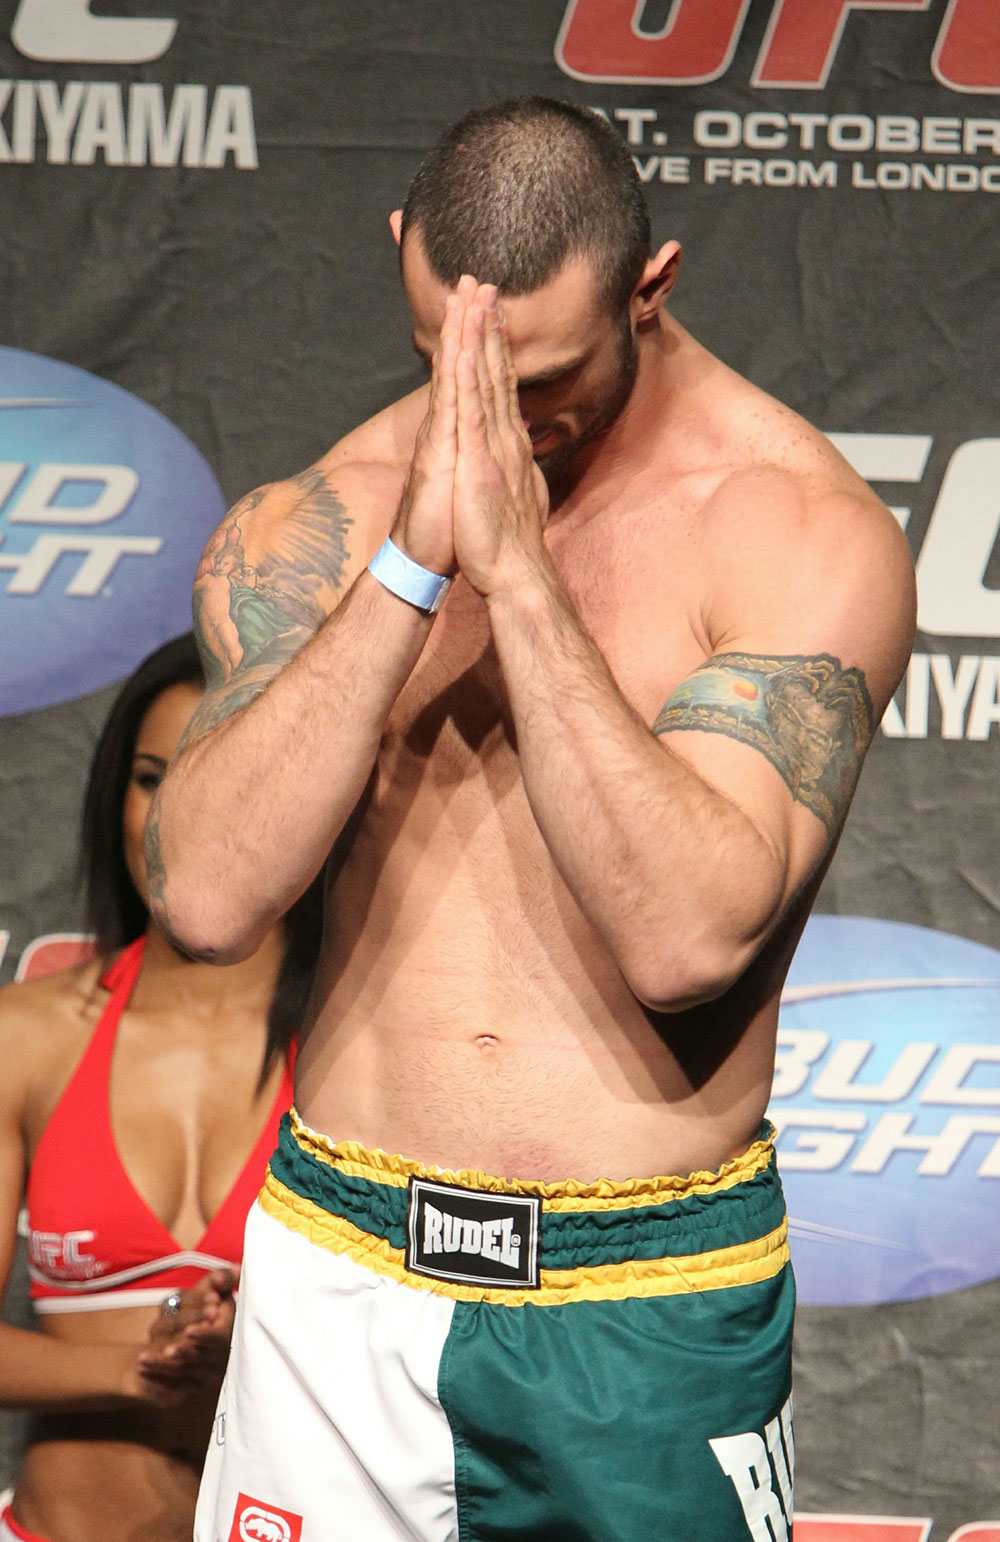 UFC 120 Weigh-Ins: Vinicius Quieroz